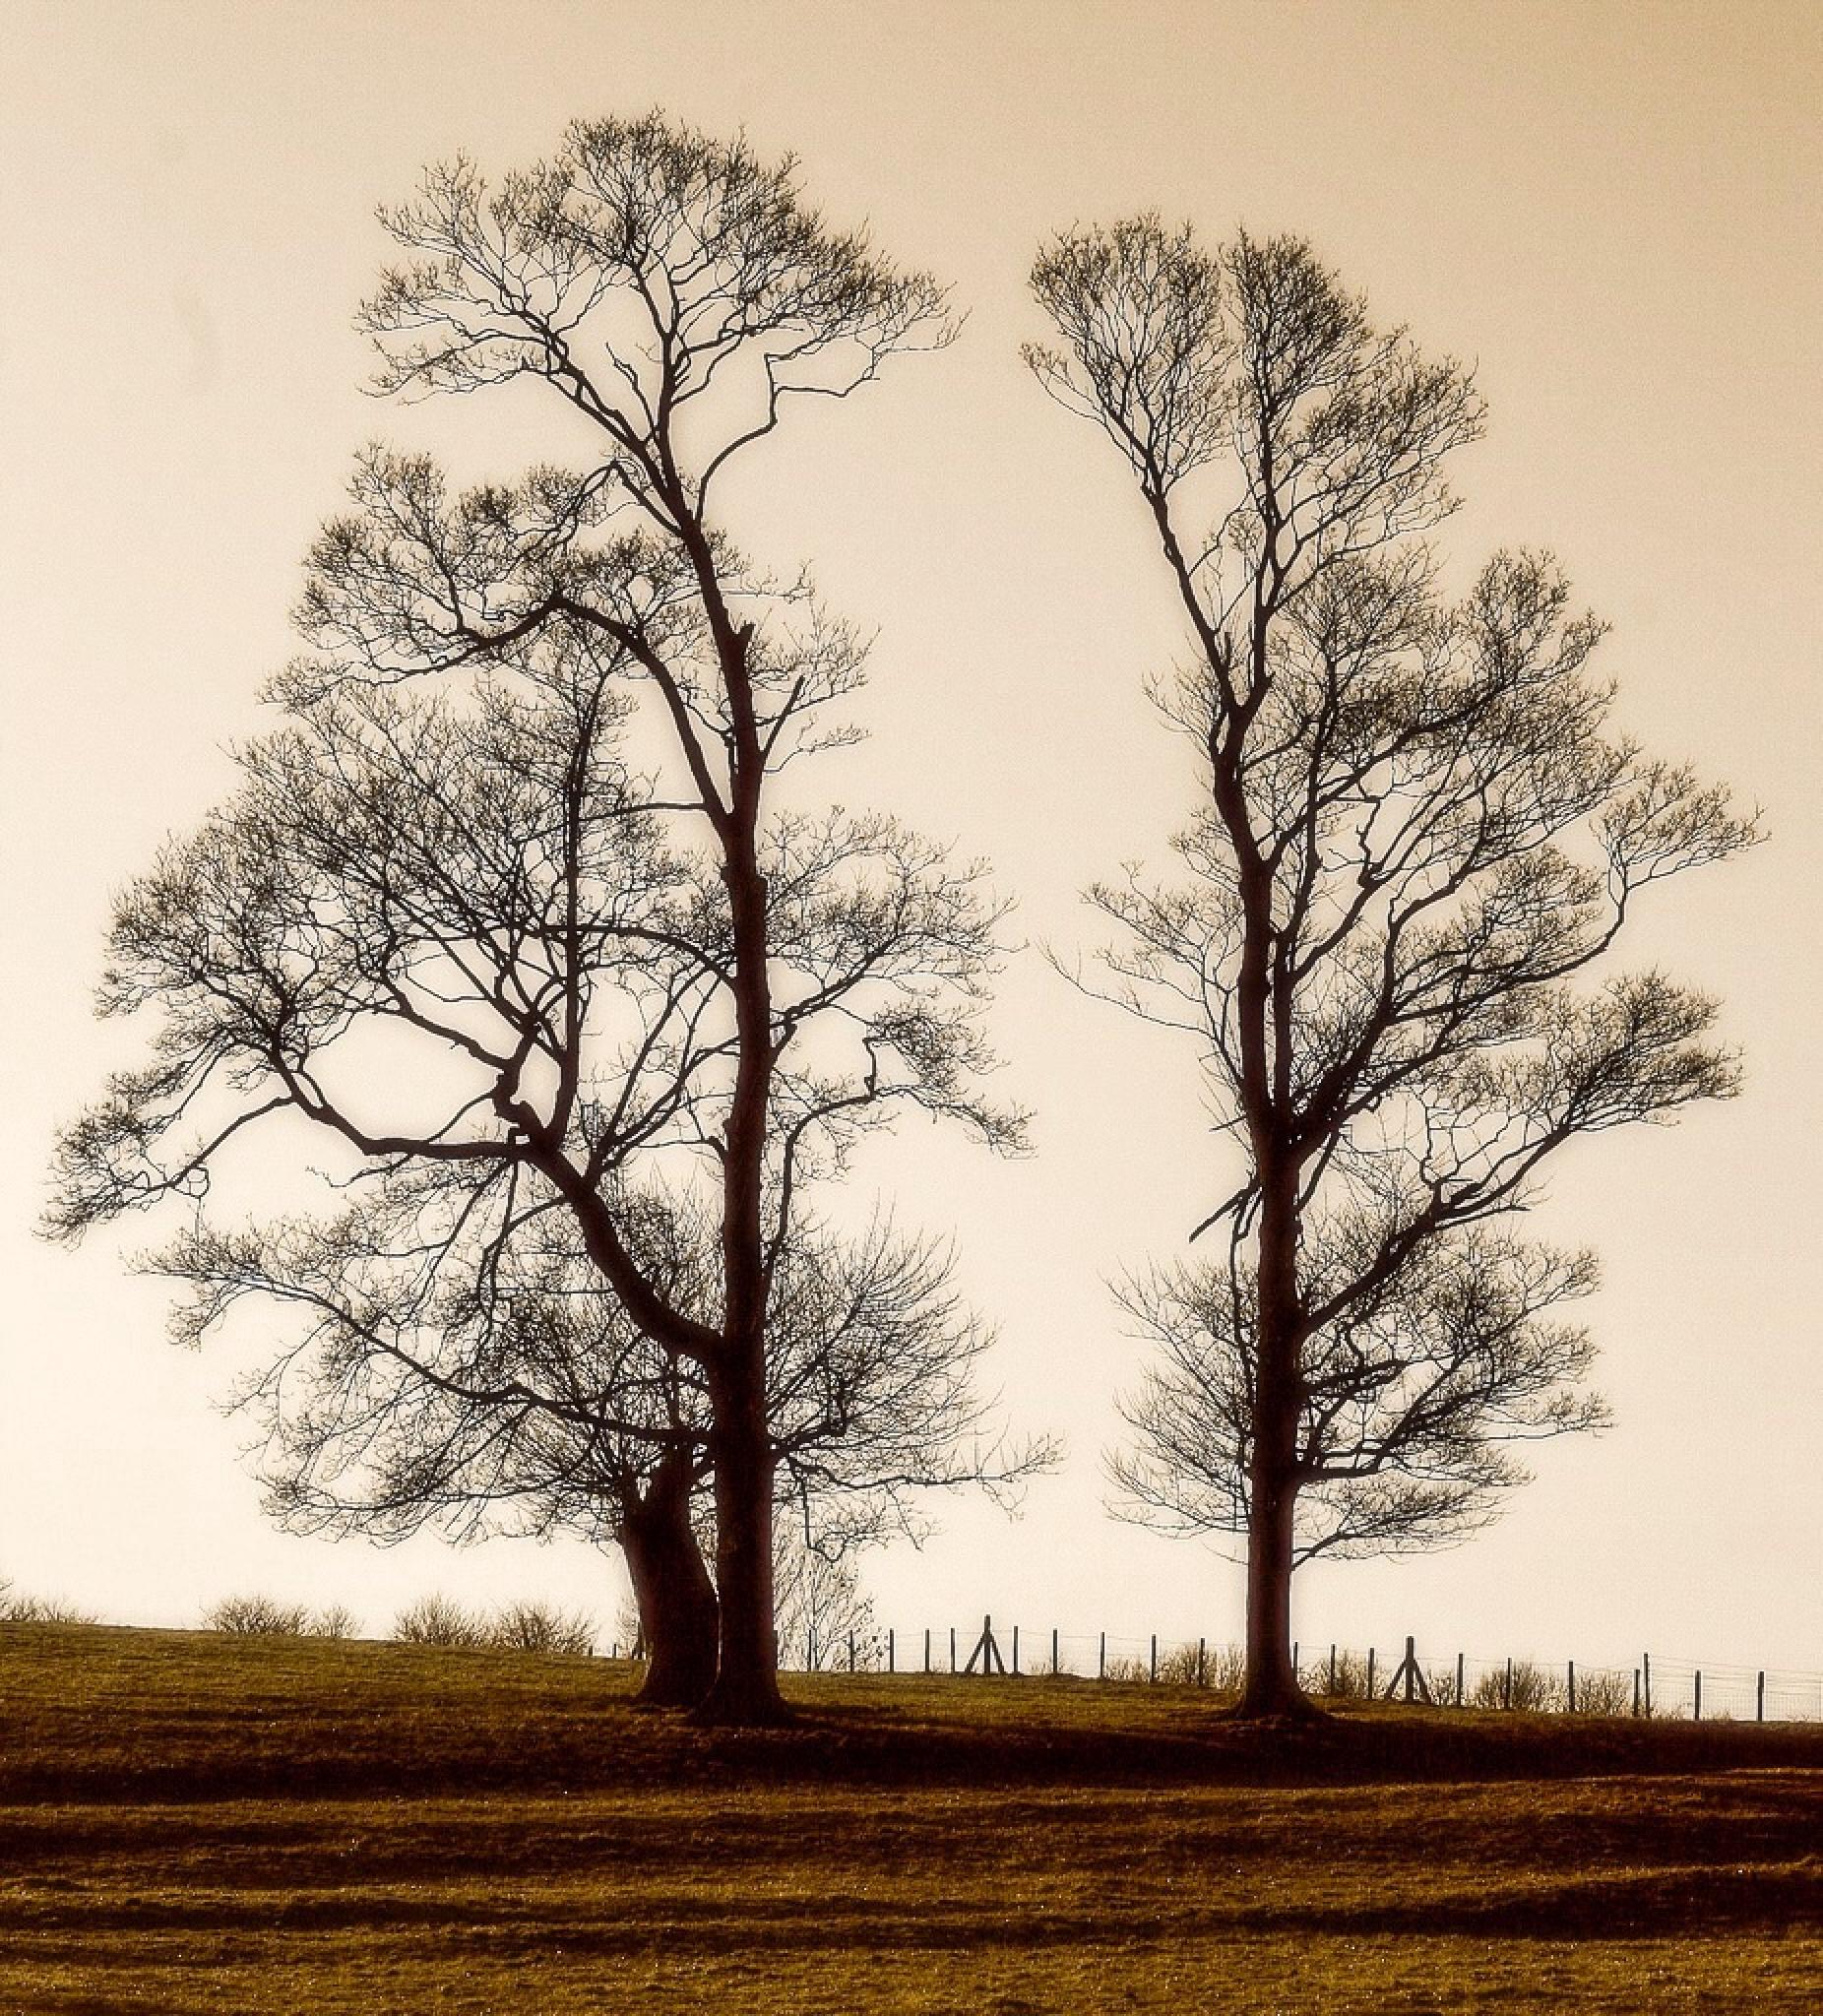 Trees on a Hill... by Michael jjg